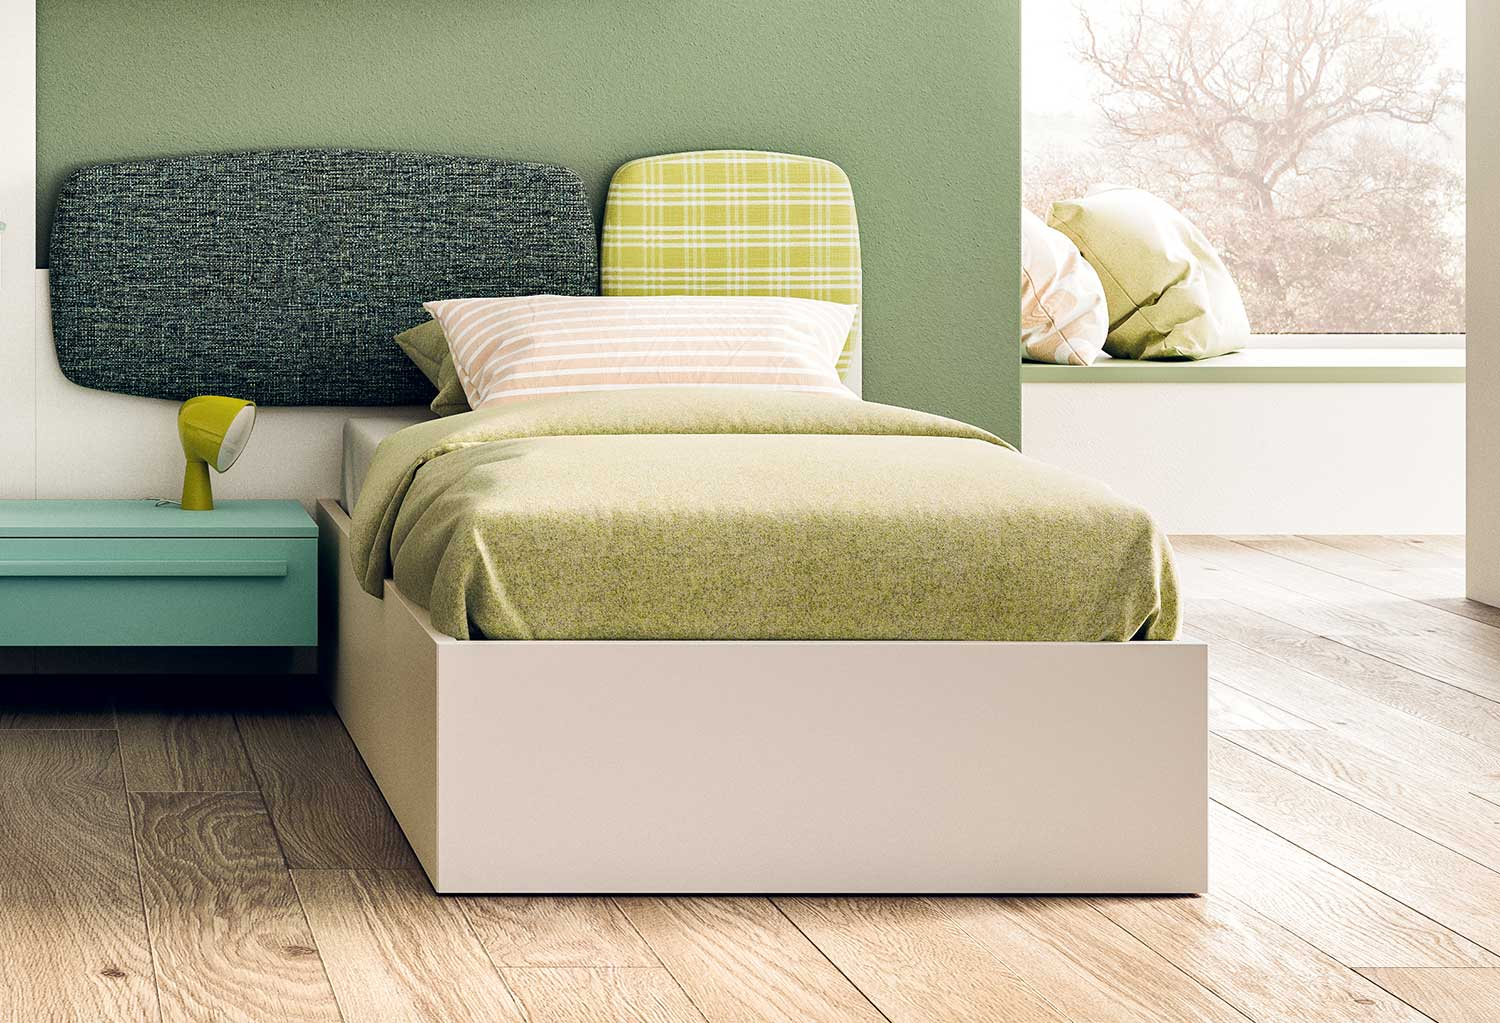 turca single ottoman bed clever it